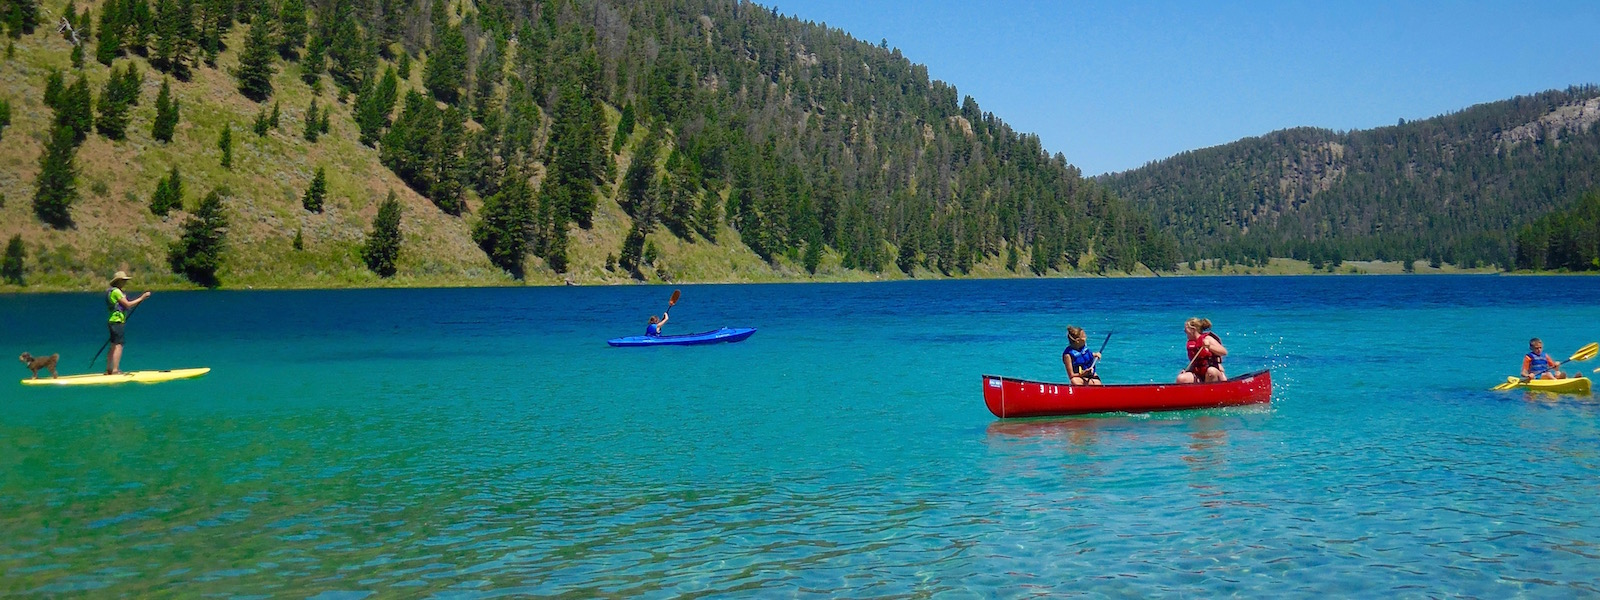 Family Fun Float Trip - Camping, Canoeing and more!